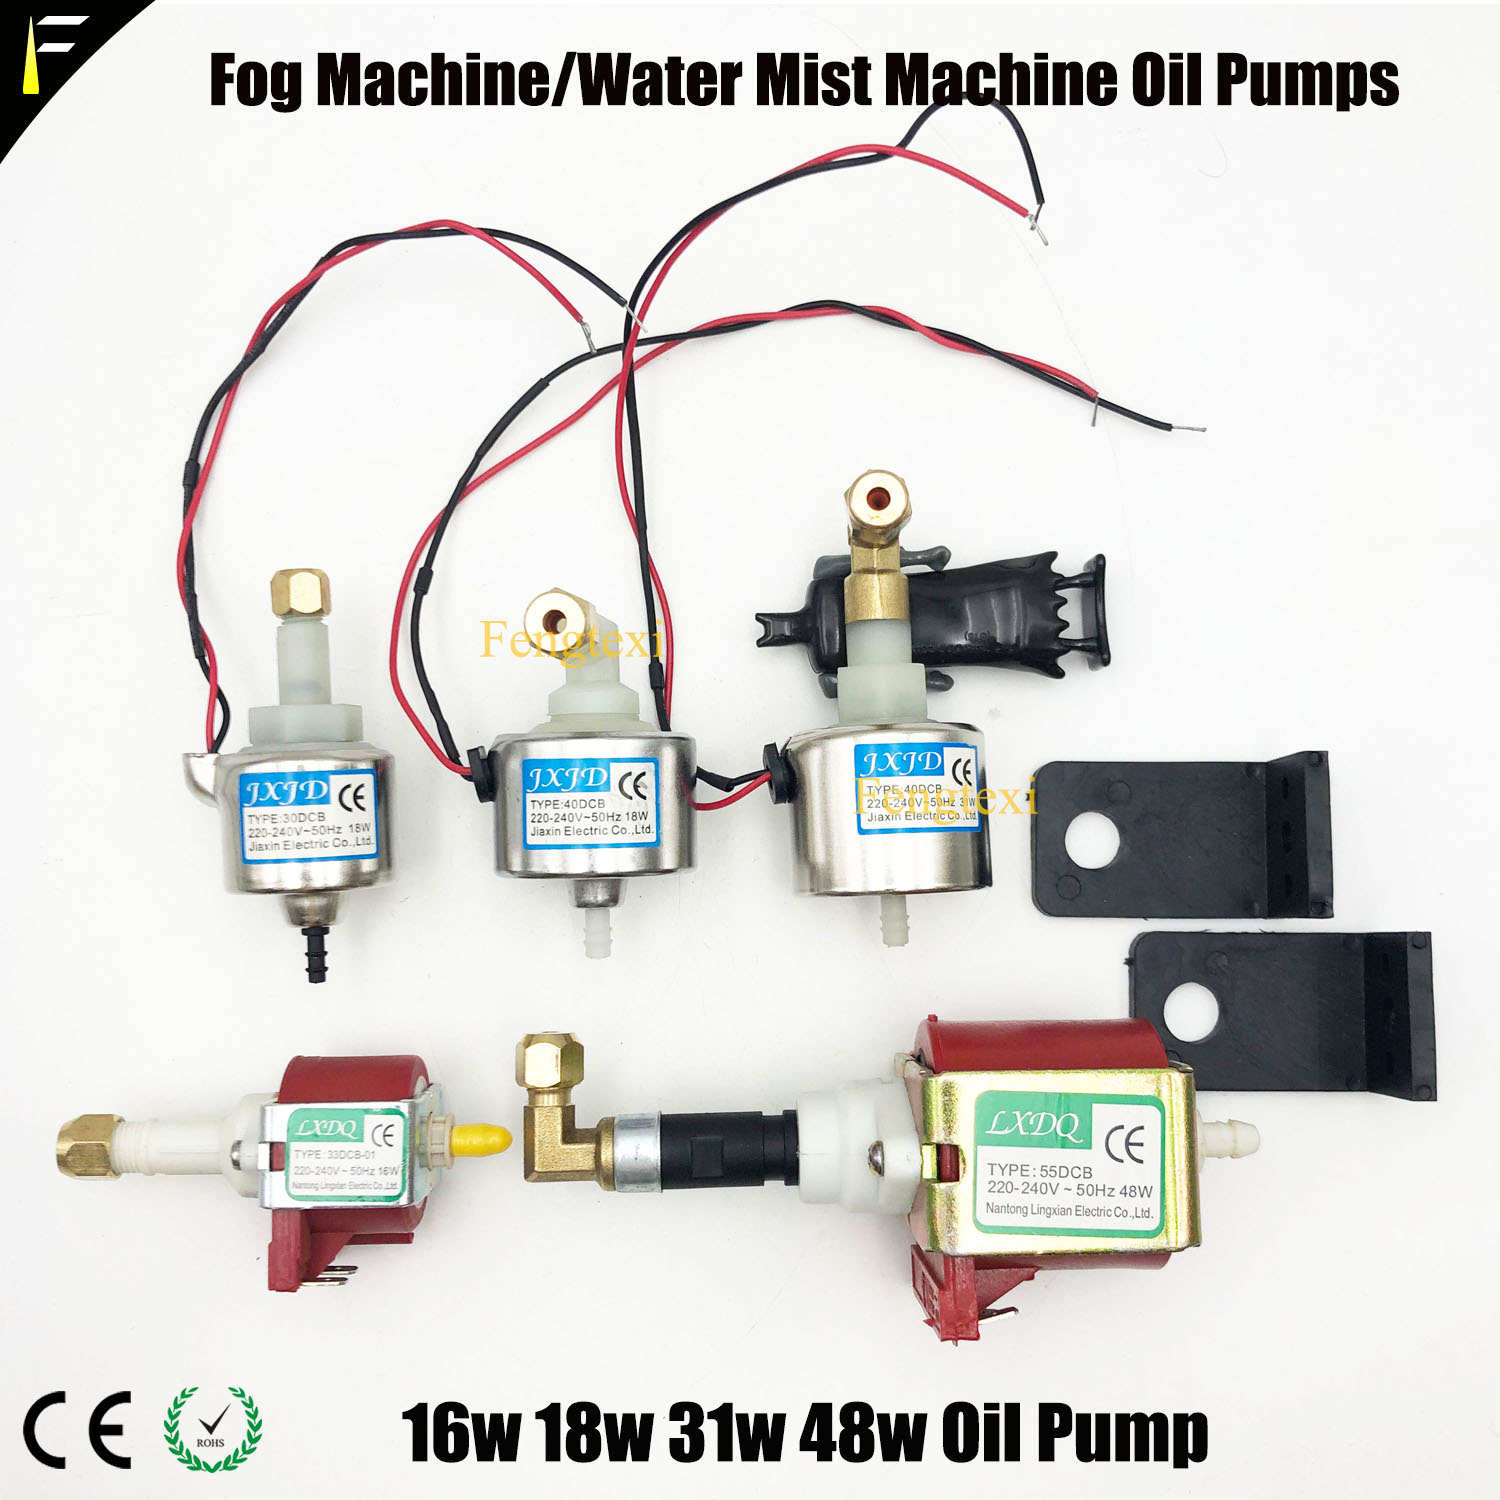 Oil Pump 400w900w1200w1500w3000w Fog Snow Faze Machine Special Element Oil Pumping 16w33DCB 18w33DCB 31w40DCB  48w55DCB